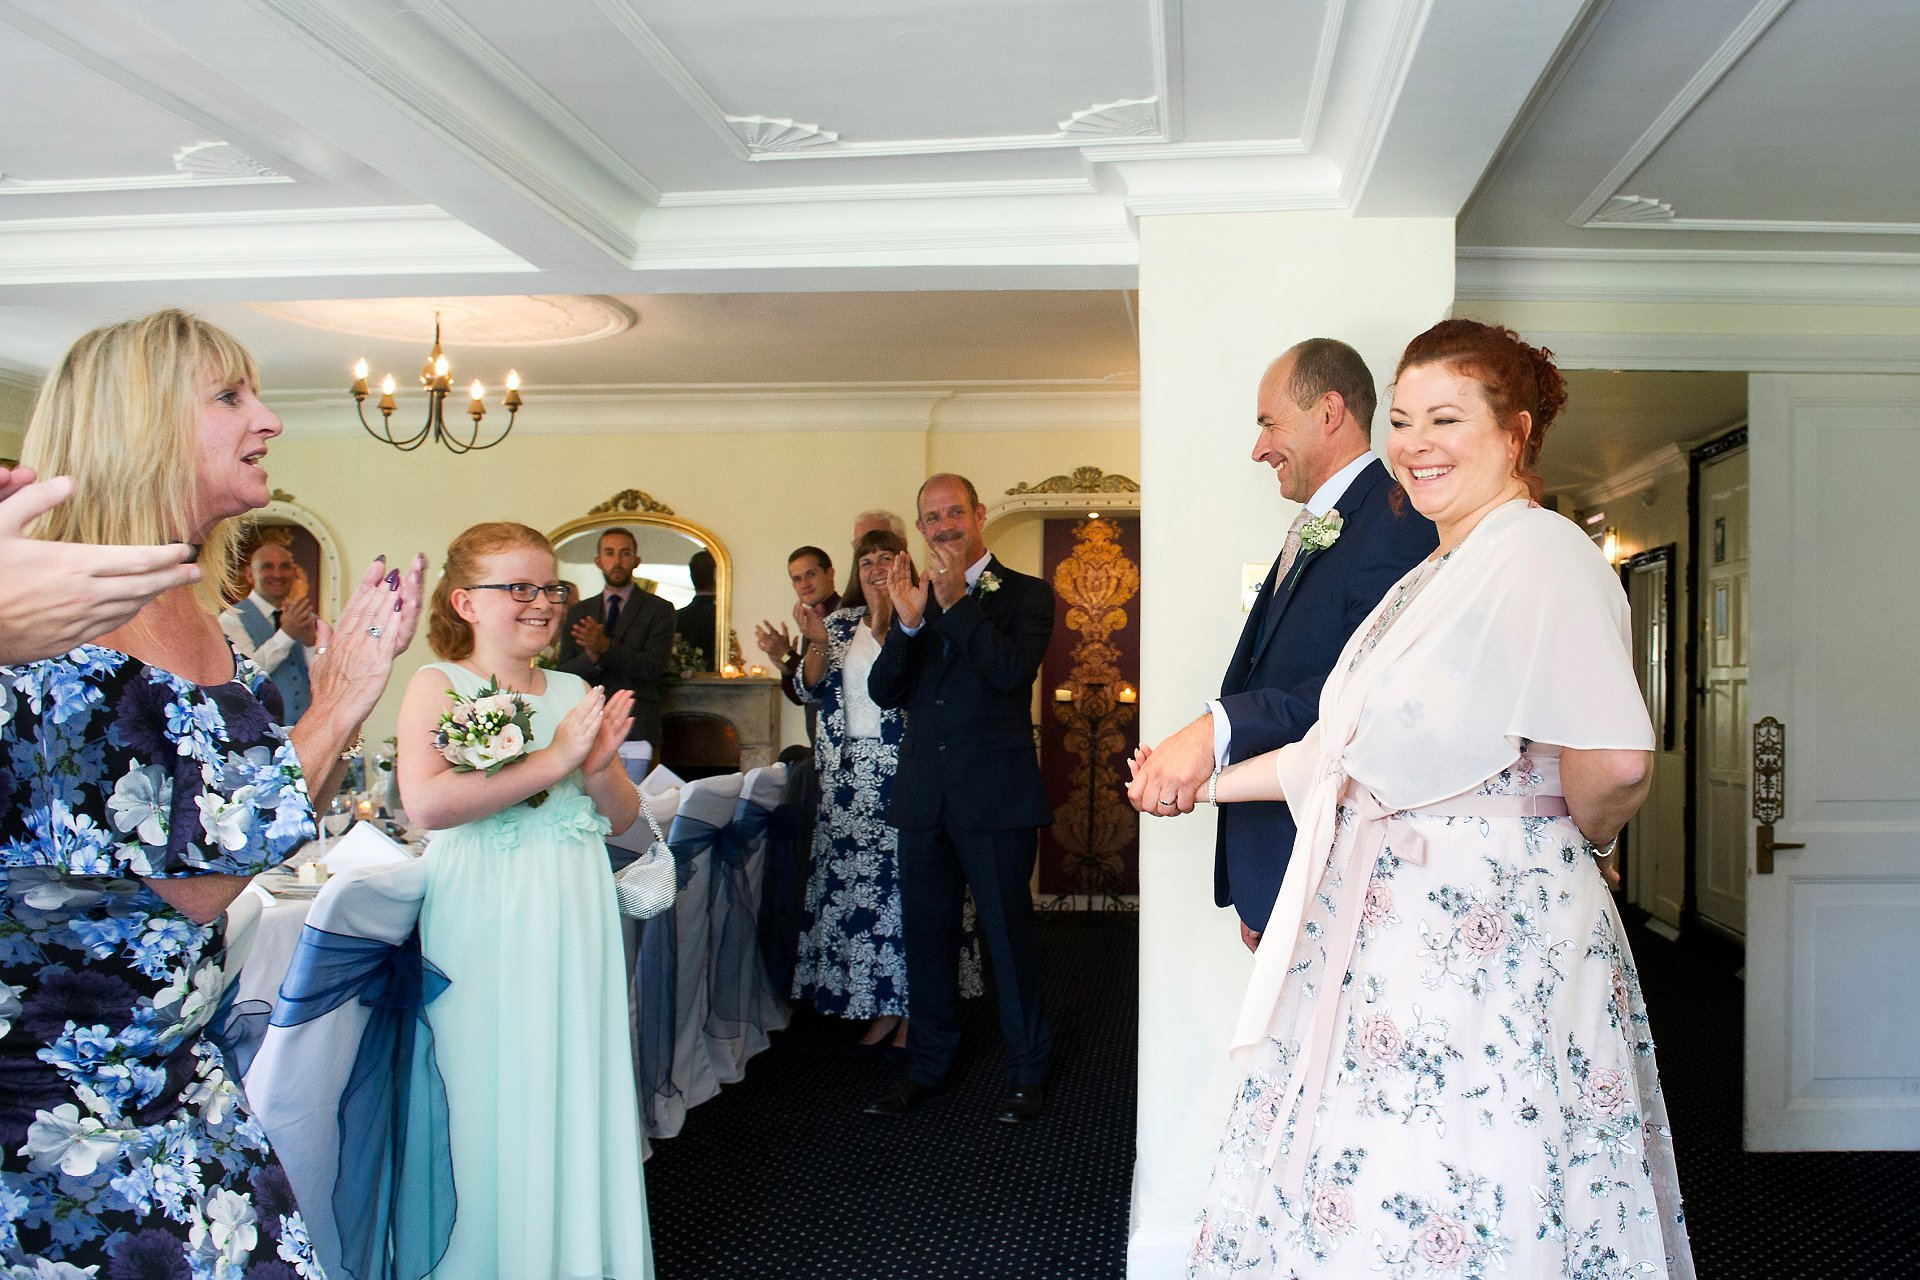 Bride and groom entering the Terrace Room at Ghyll Manor near Horsham for their wedding brekfast for a small, intimate group of wedding guests